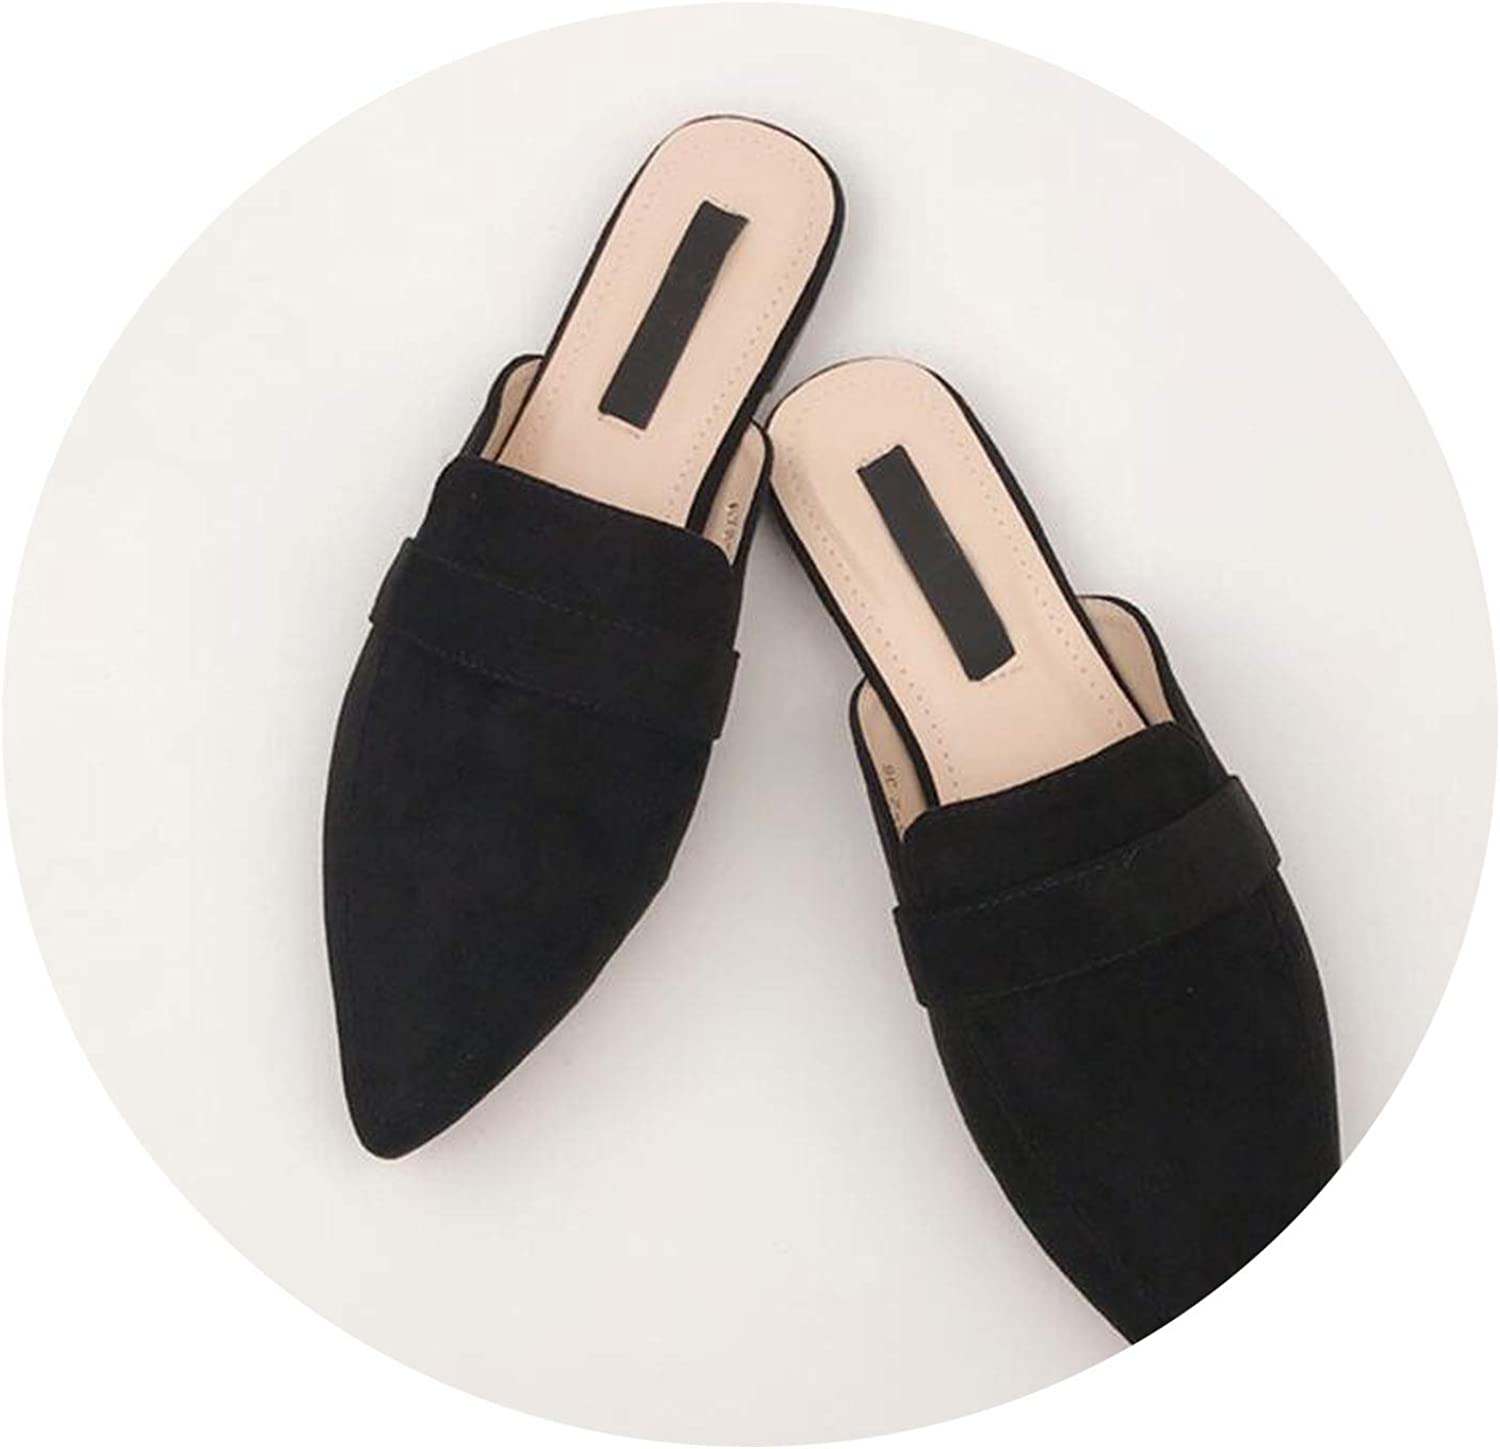 Monicas-house Summer Flats Mules Lady Sandals Slippers Serpentine Slip On Pointed Toe Women Mules Outdoor Slipper shoes Woman Slides